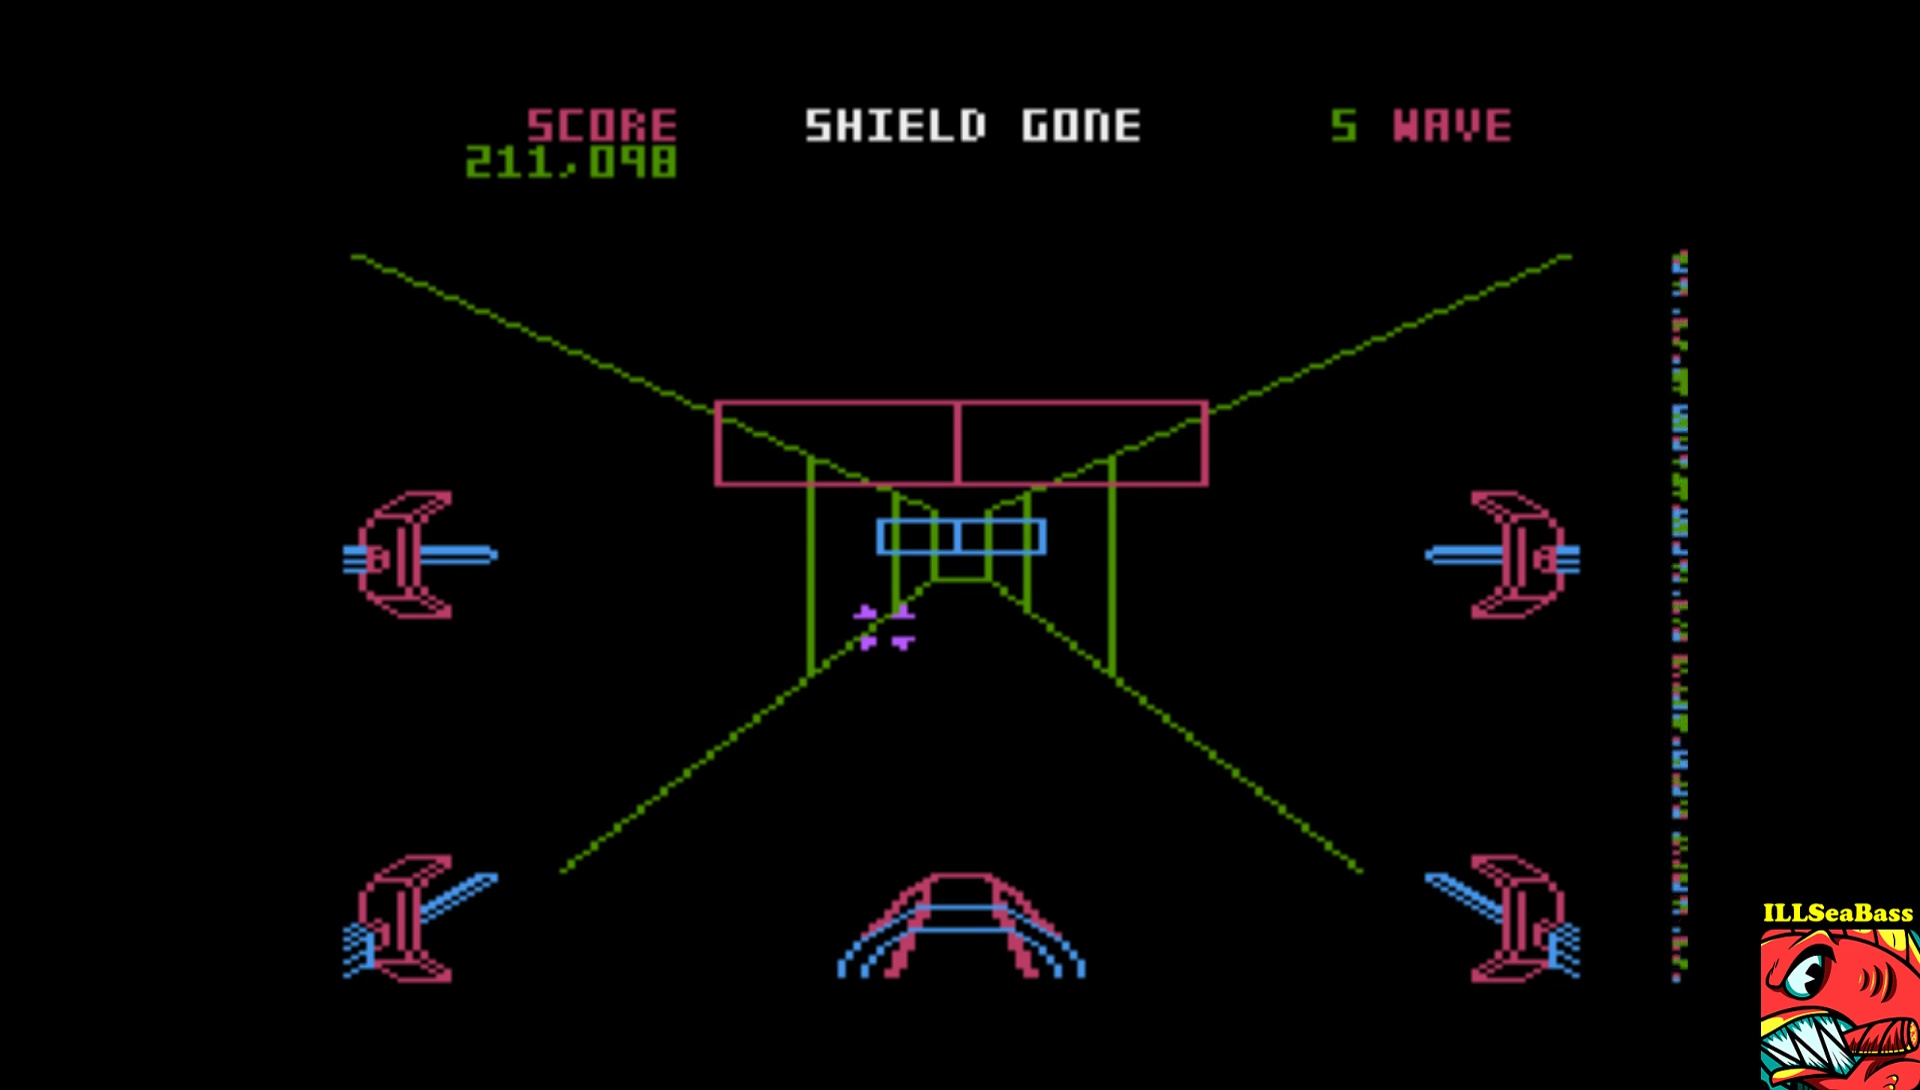 ILLSeaBass: Star Wars: The Arcade Game [Skill 1] (Atari 5200 Emulated) 211,098 points on 2017-03-24 21:29:34